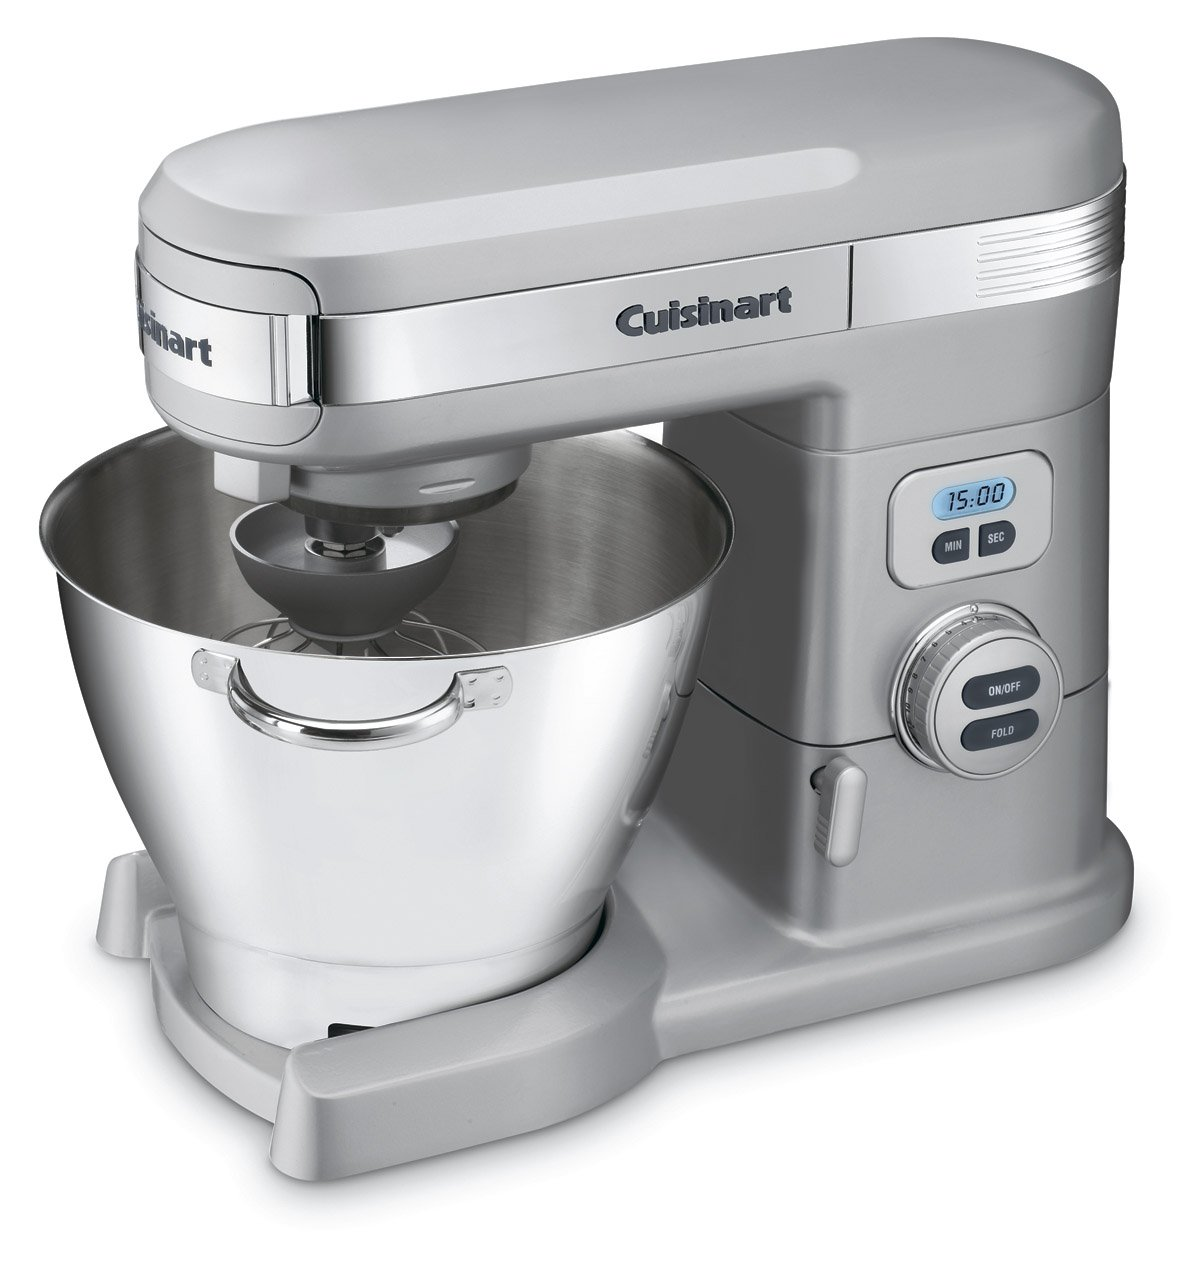 Cuisinart SM-55BC 5-1 2-Quart 12-Speed Stand Mixer, Brushed Chrome